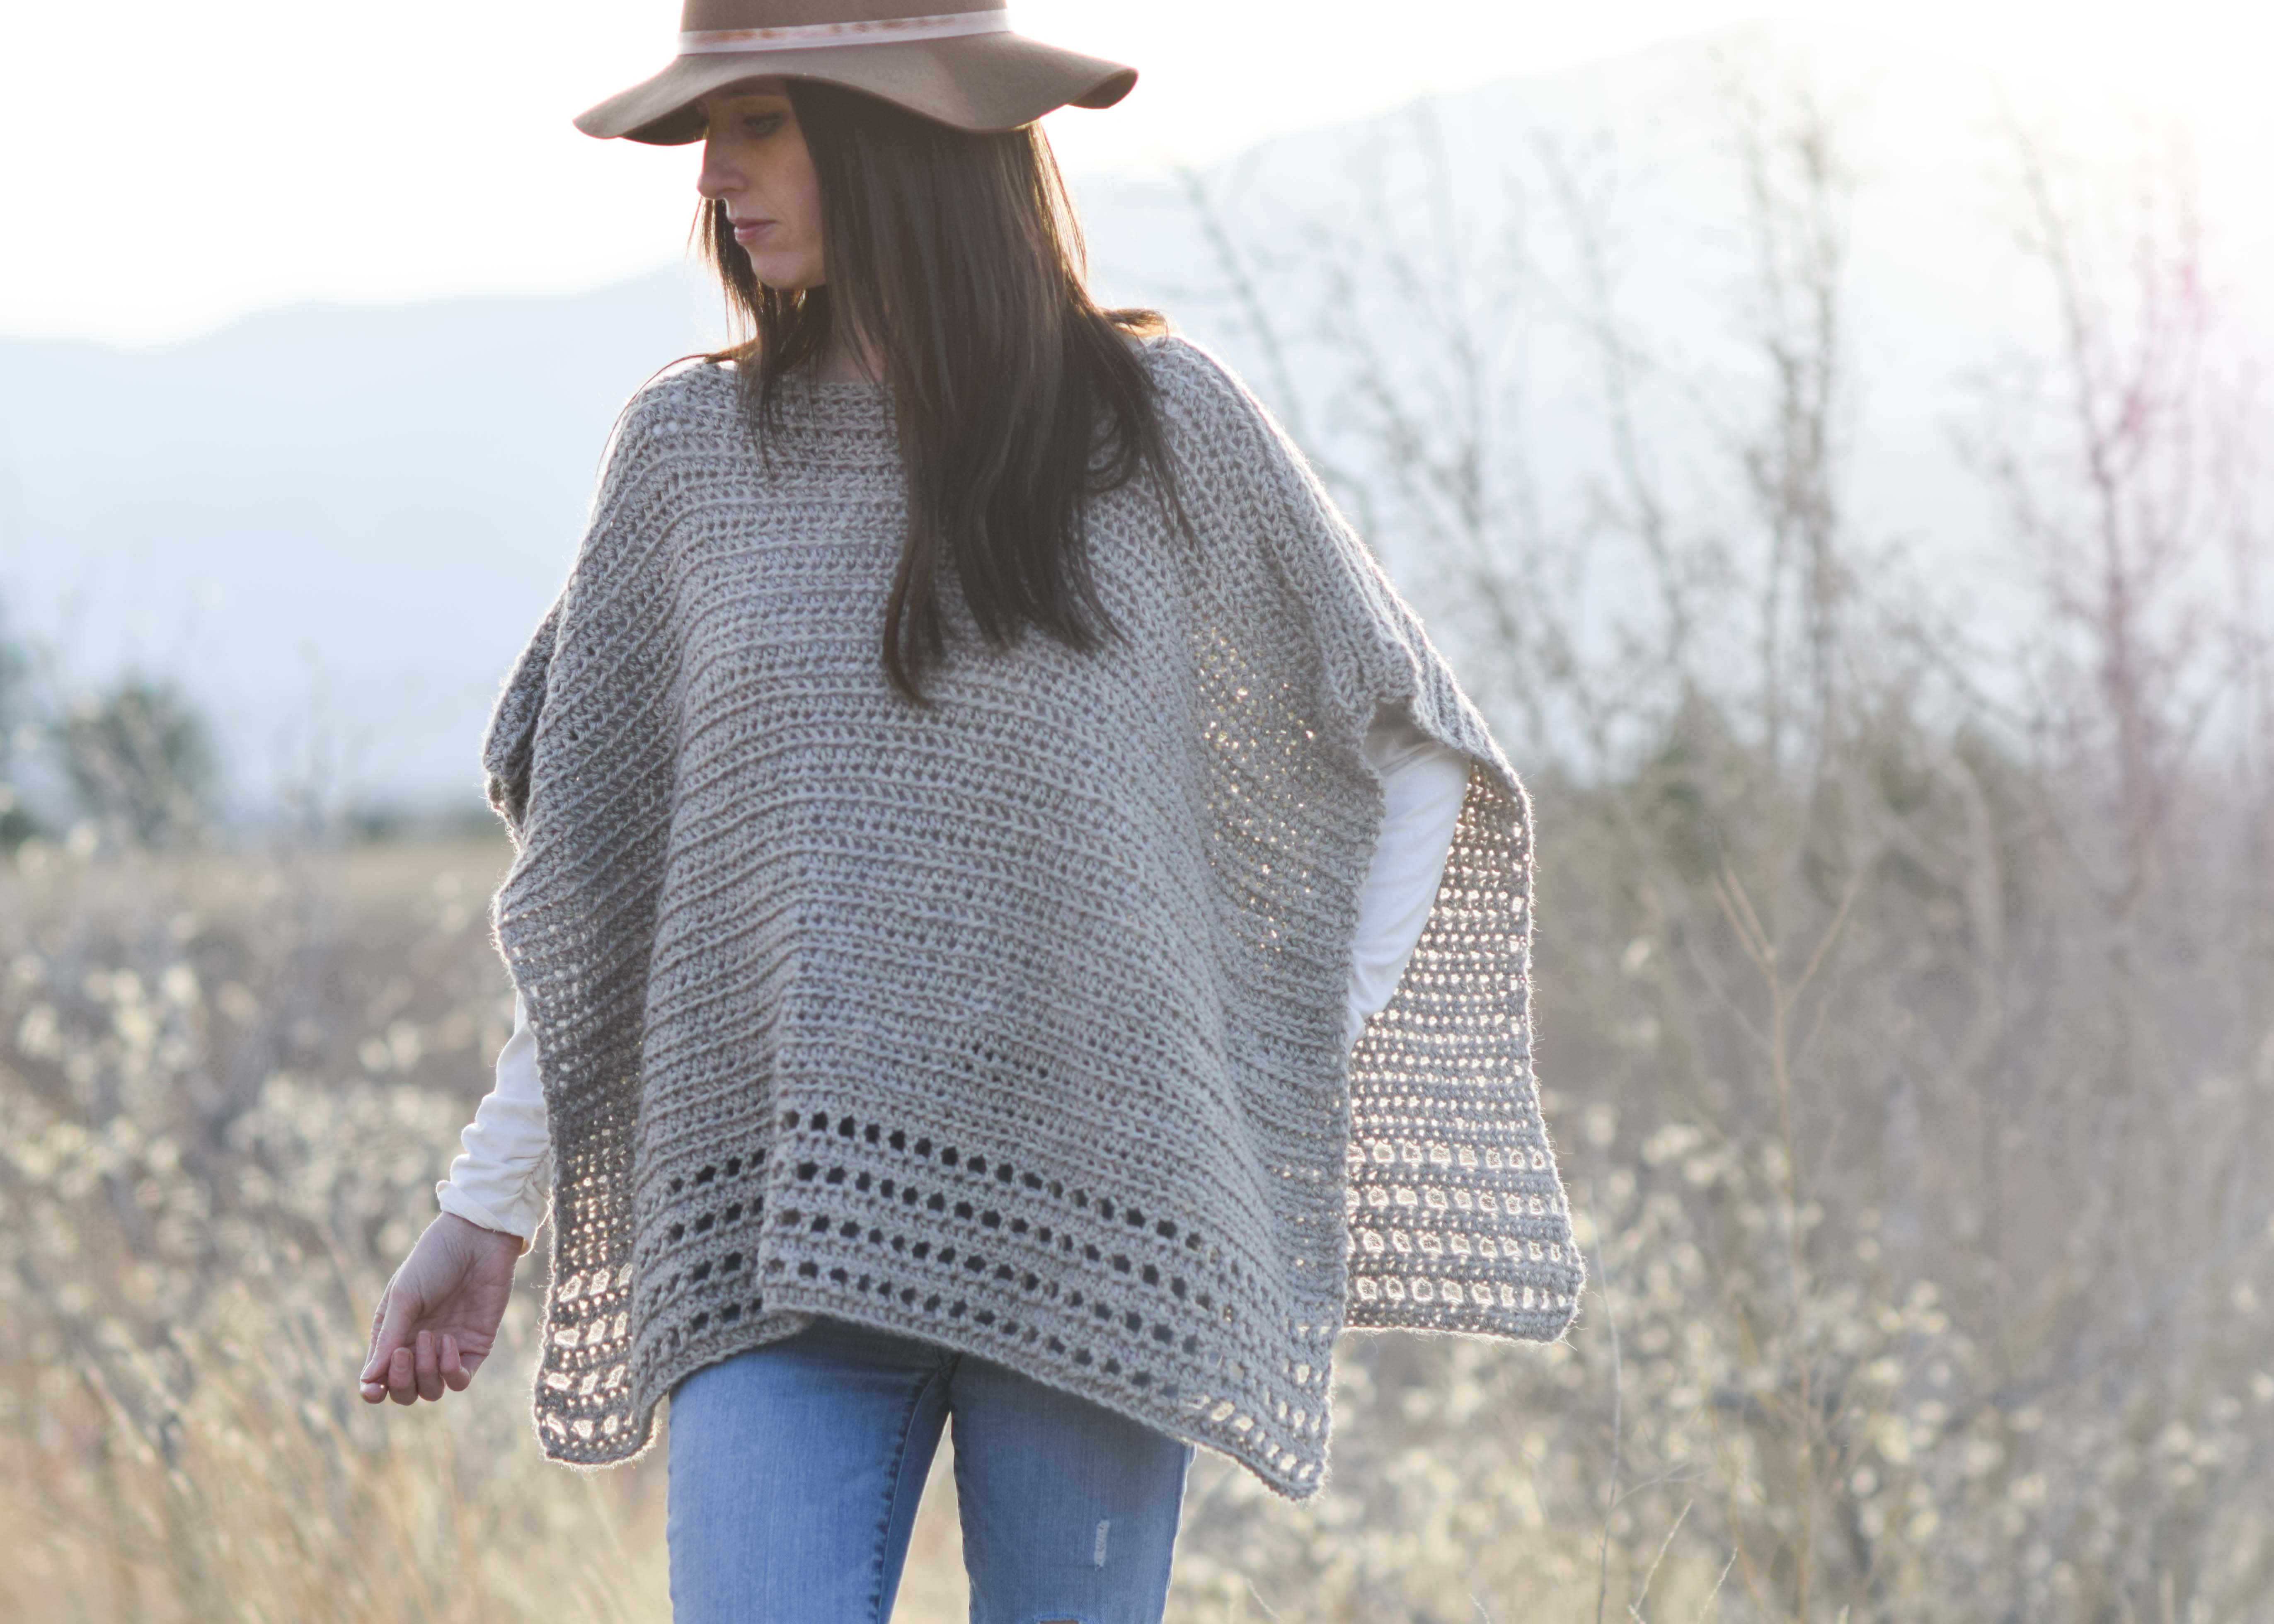 New Light Alpaca Poncho Crochet Pattern – Mama In A Stitch Ponco Crochet Of Great 49 Images Ponco Crochet